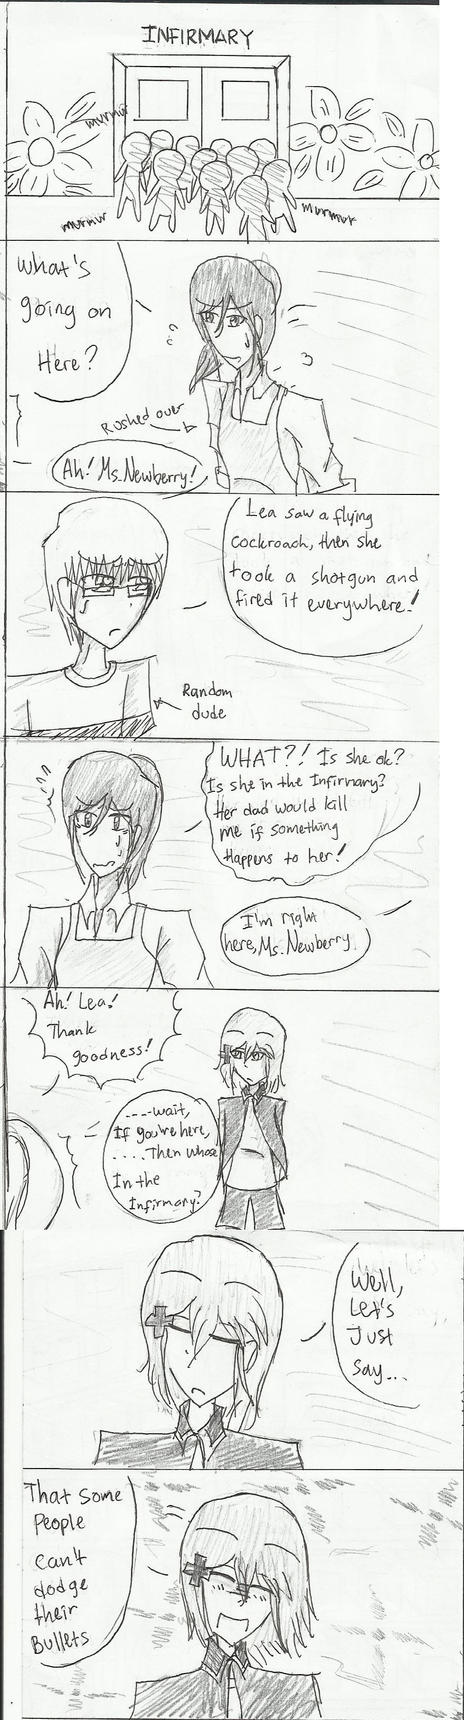 Lea's Kindergarten Diaries 1: Infirmary by roppiepop